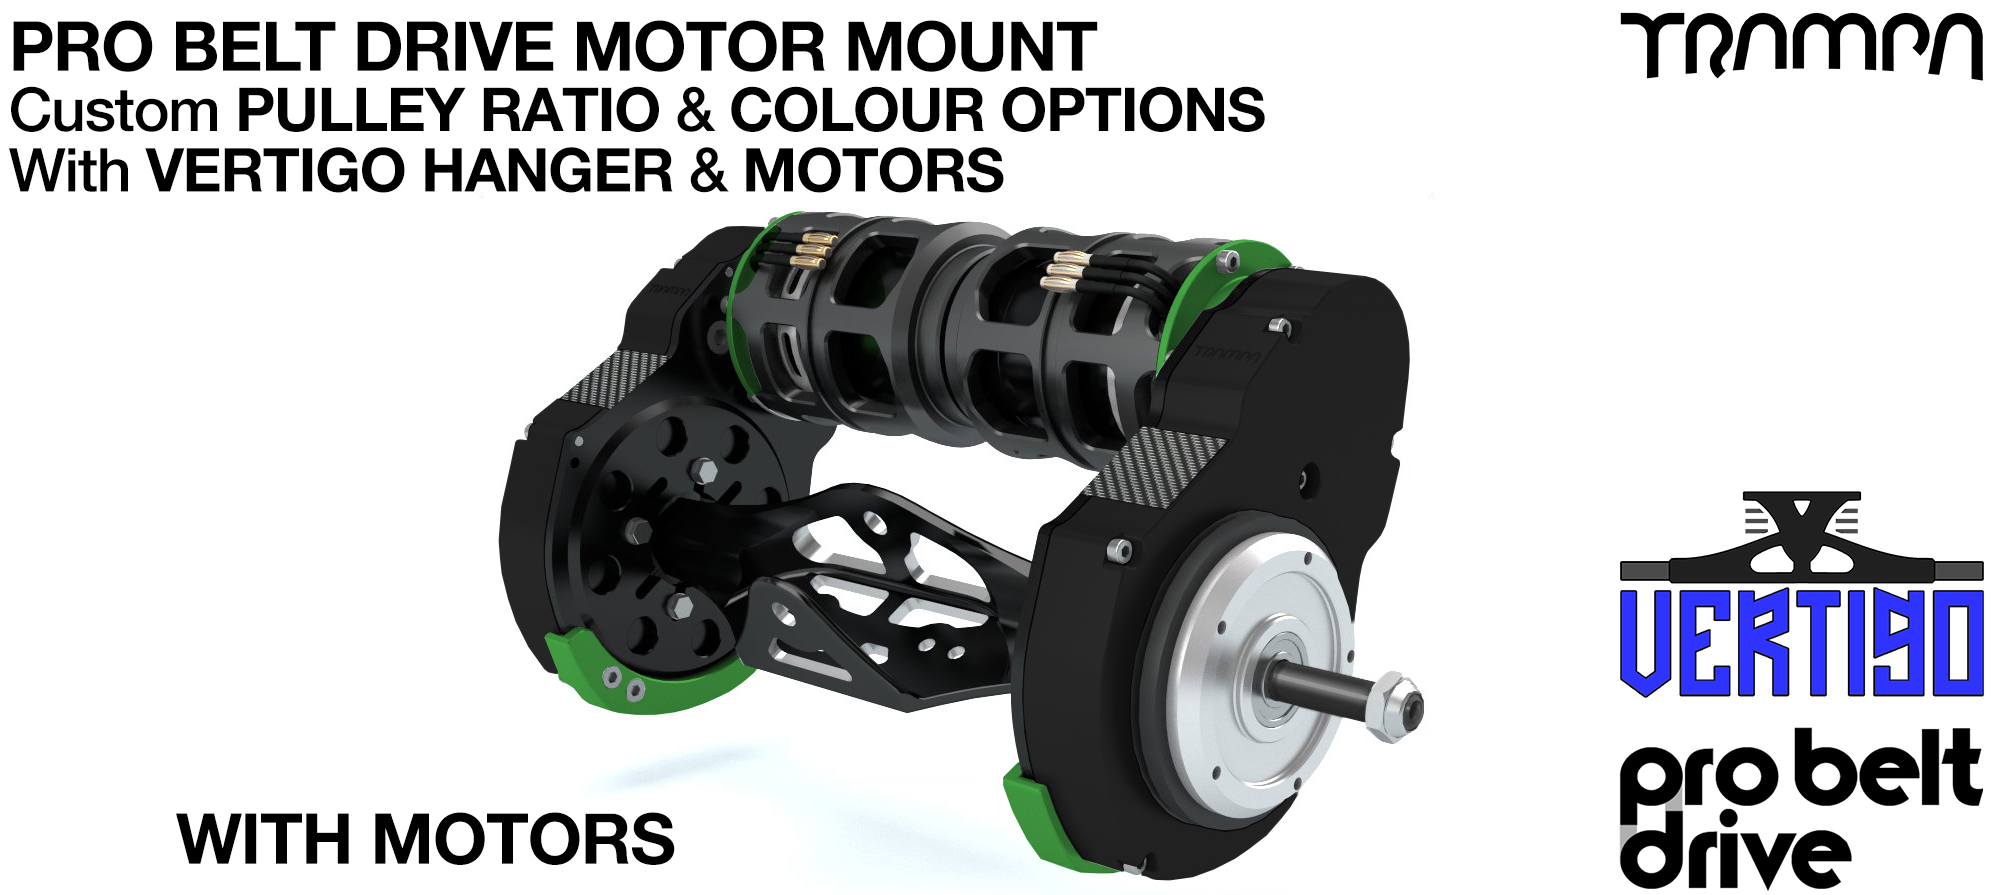 Mountainboard PRO Belt Drive TWIN Motor Mounts WITH Motors & Precision VERTIGO Hanger